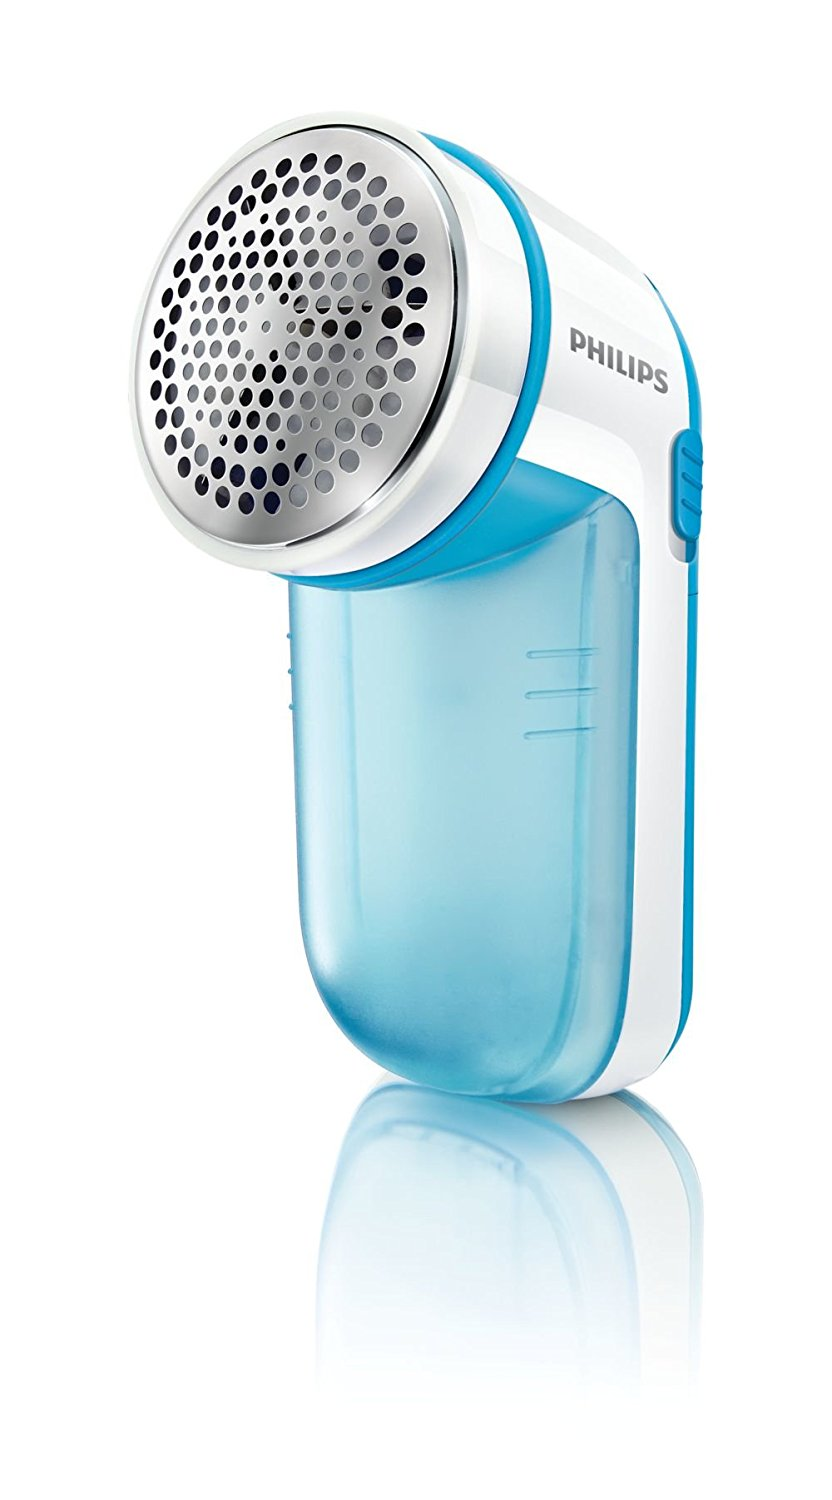 Philips Fabric Shaver